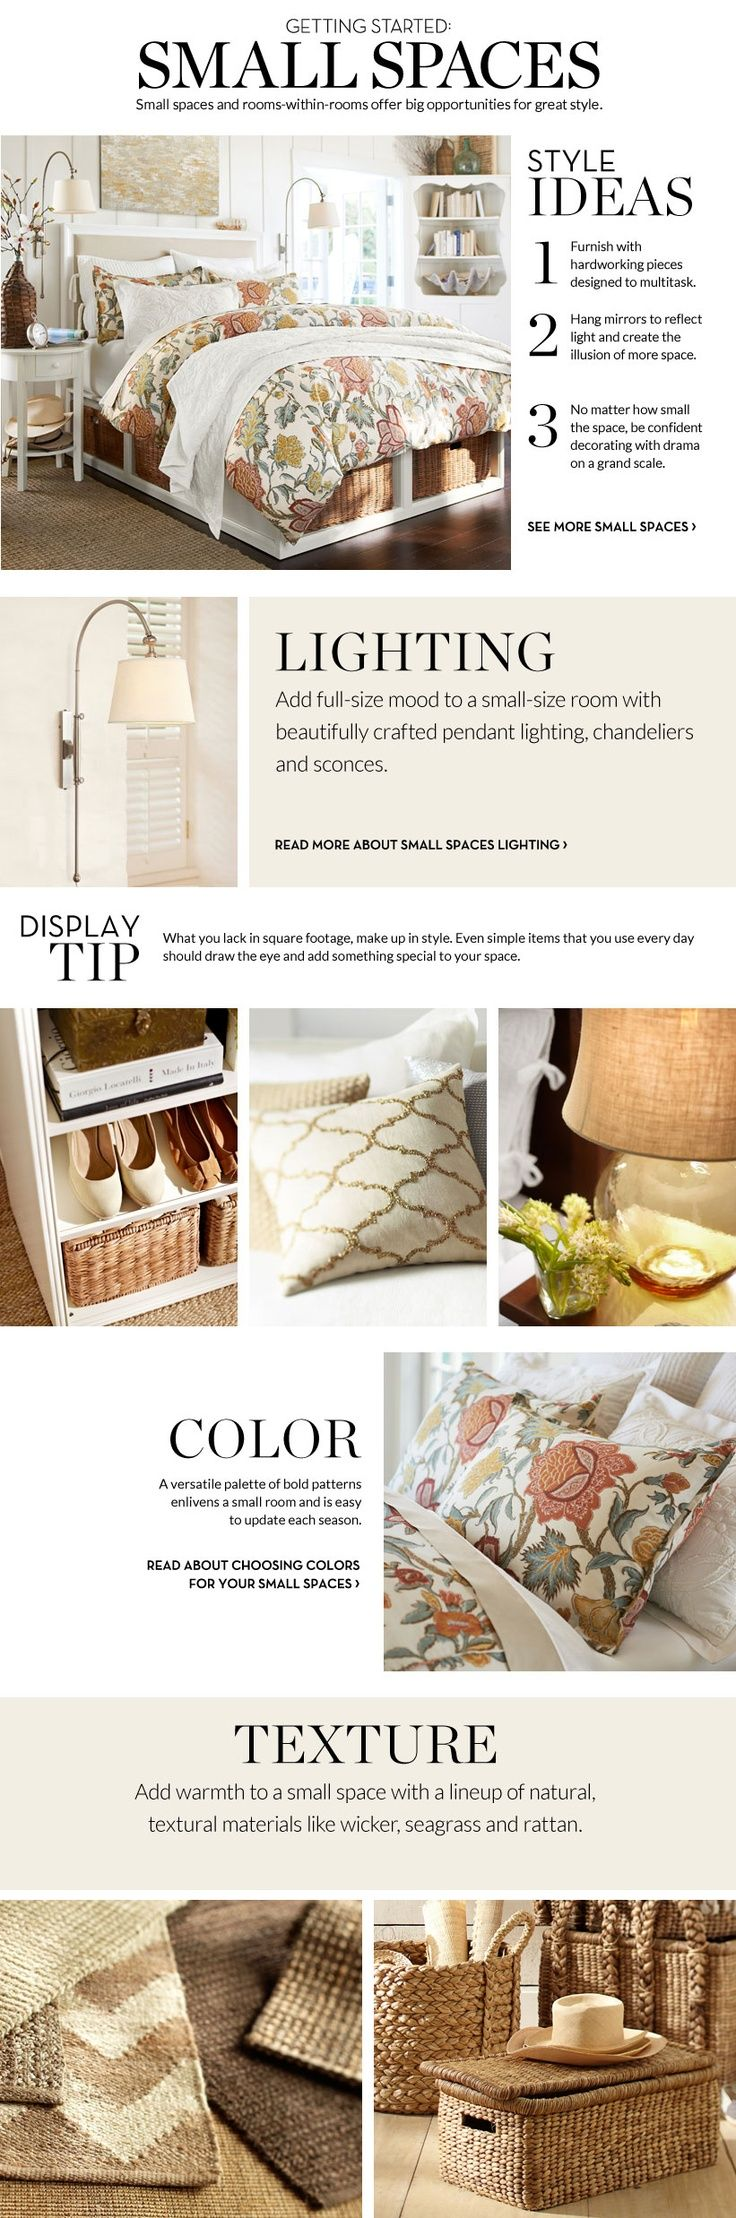 Small spaces inspiration how to decorate small spaces for Bedroom organisation inspiration